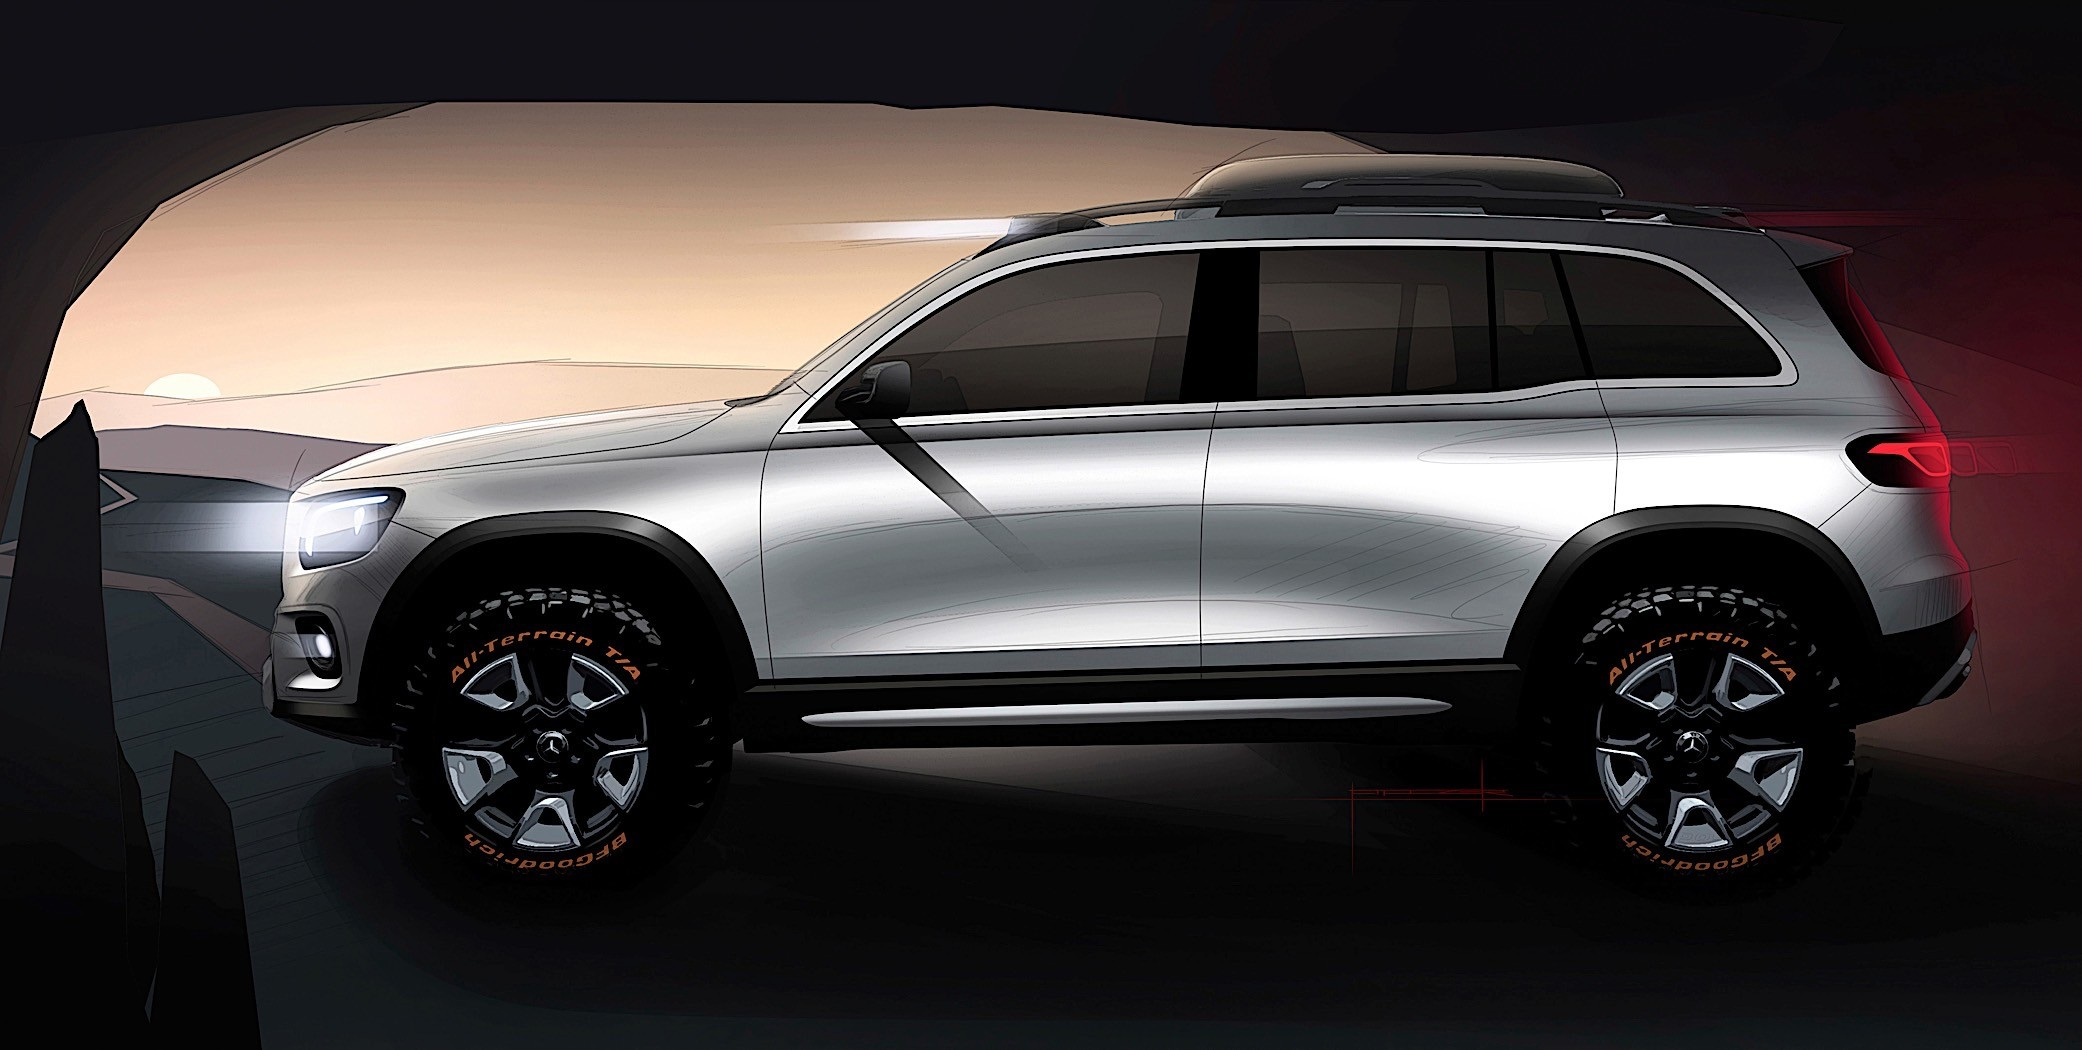 Tt Auto Sales >> Mercedes-Benz Concept GLB Looks Ready for the Great Outdoor in Shanghai - autoevolution